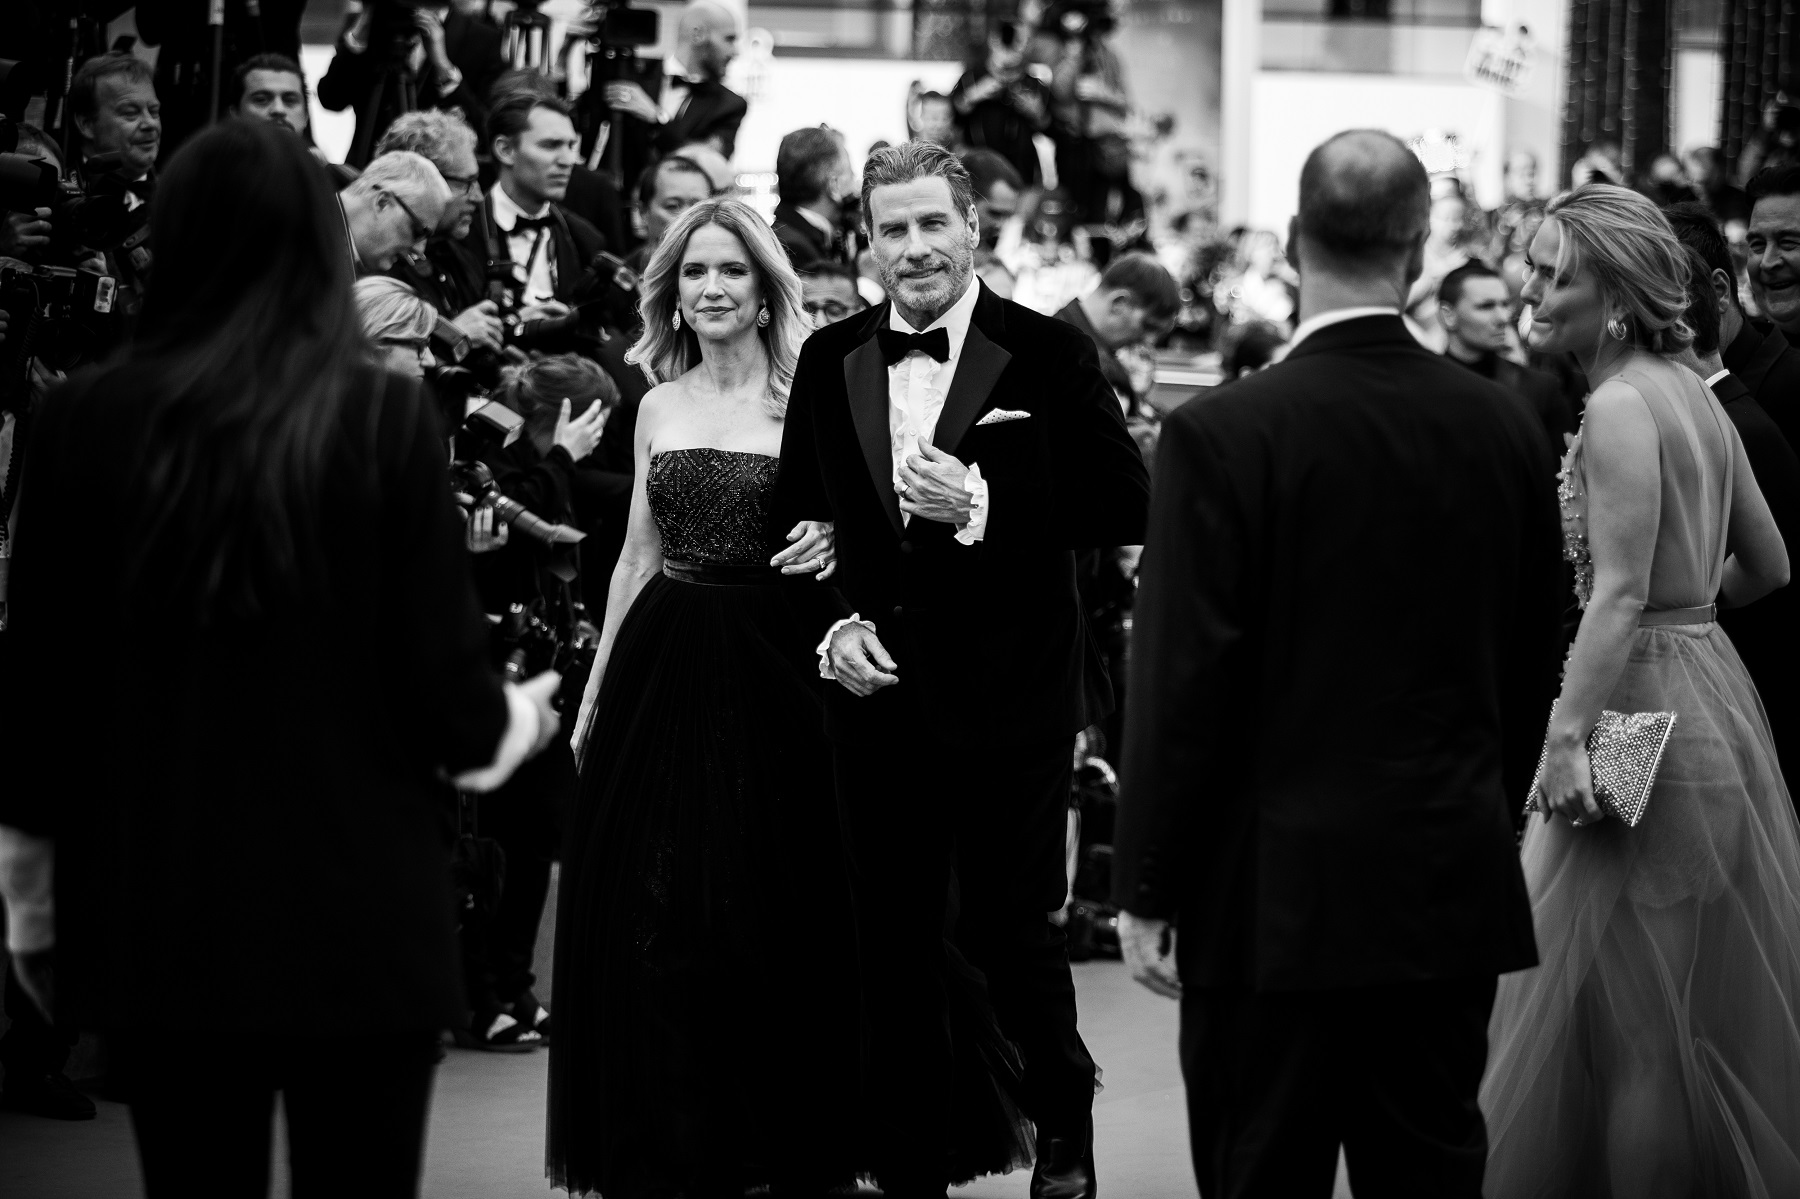 CANNES, FRANCE - MAY 15:  (EDITORS NOTE: Image has been converted to black and white) Kelly Preston and John Travolta attend the screening of